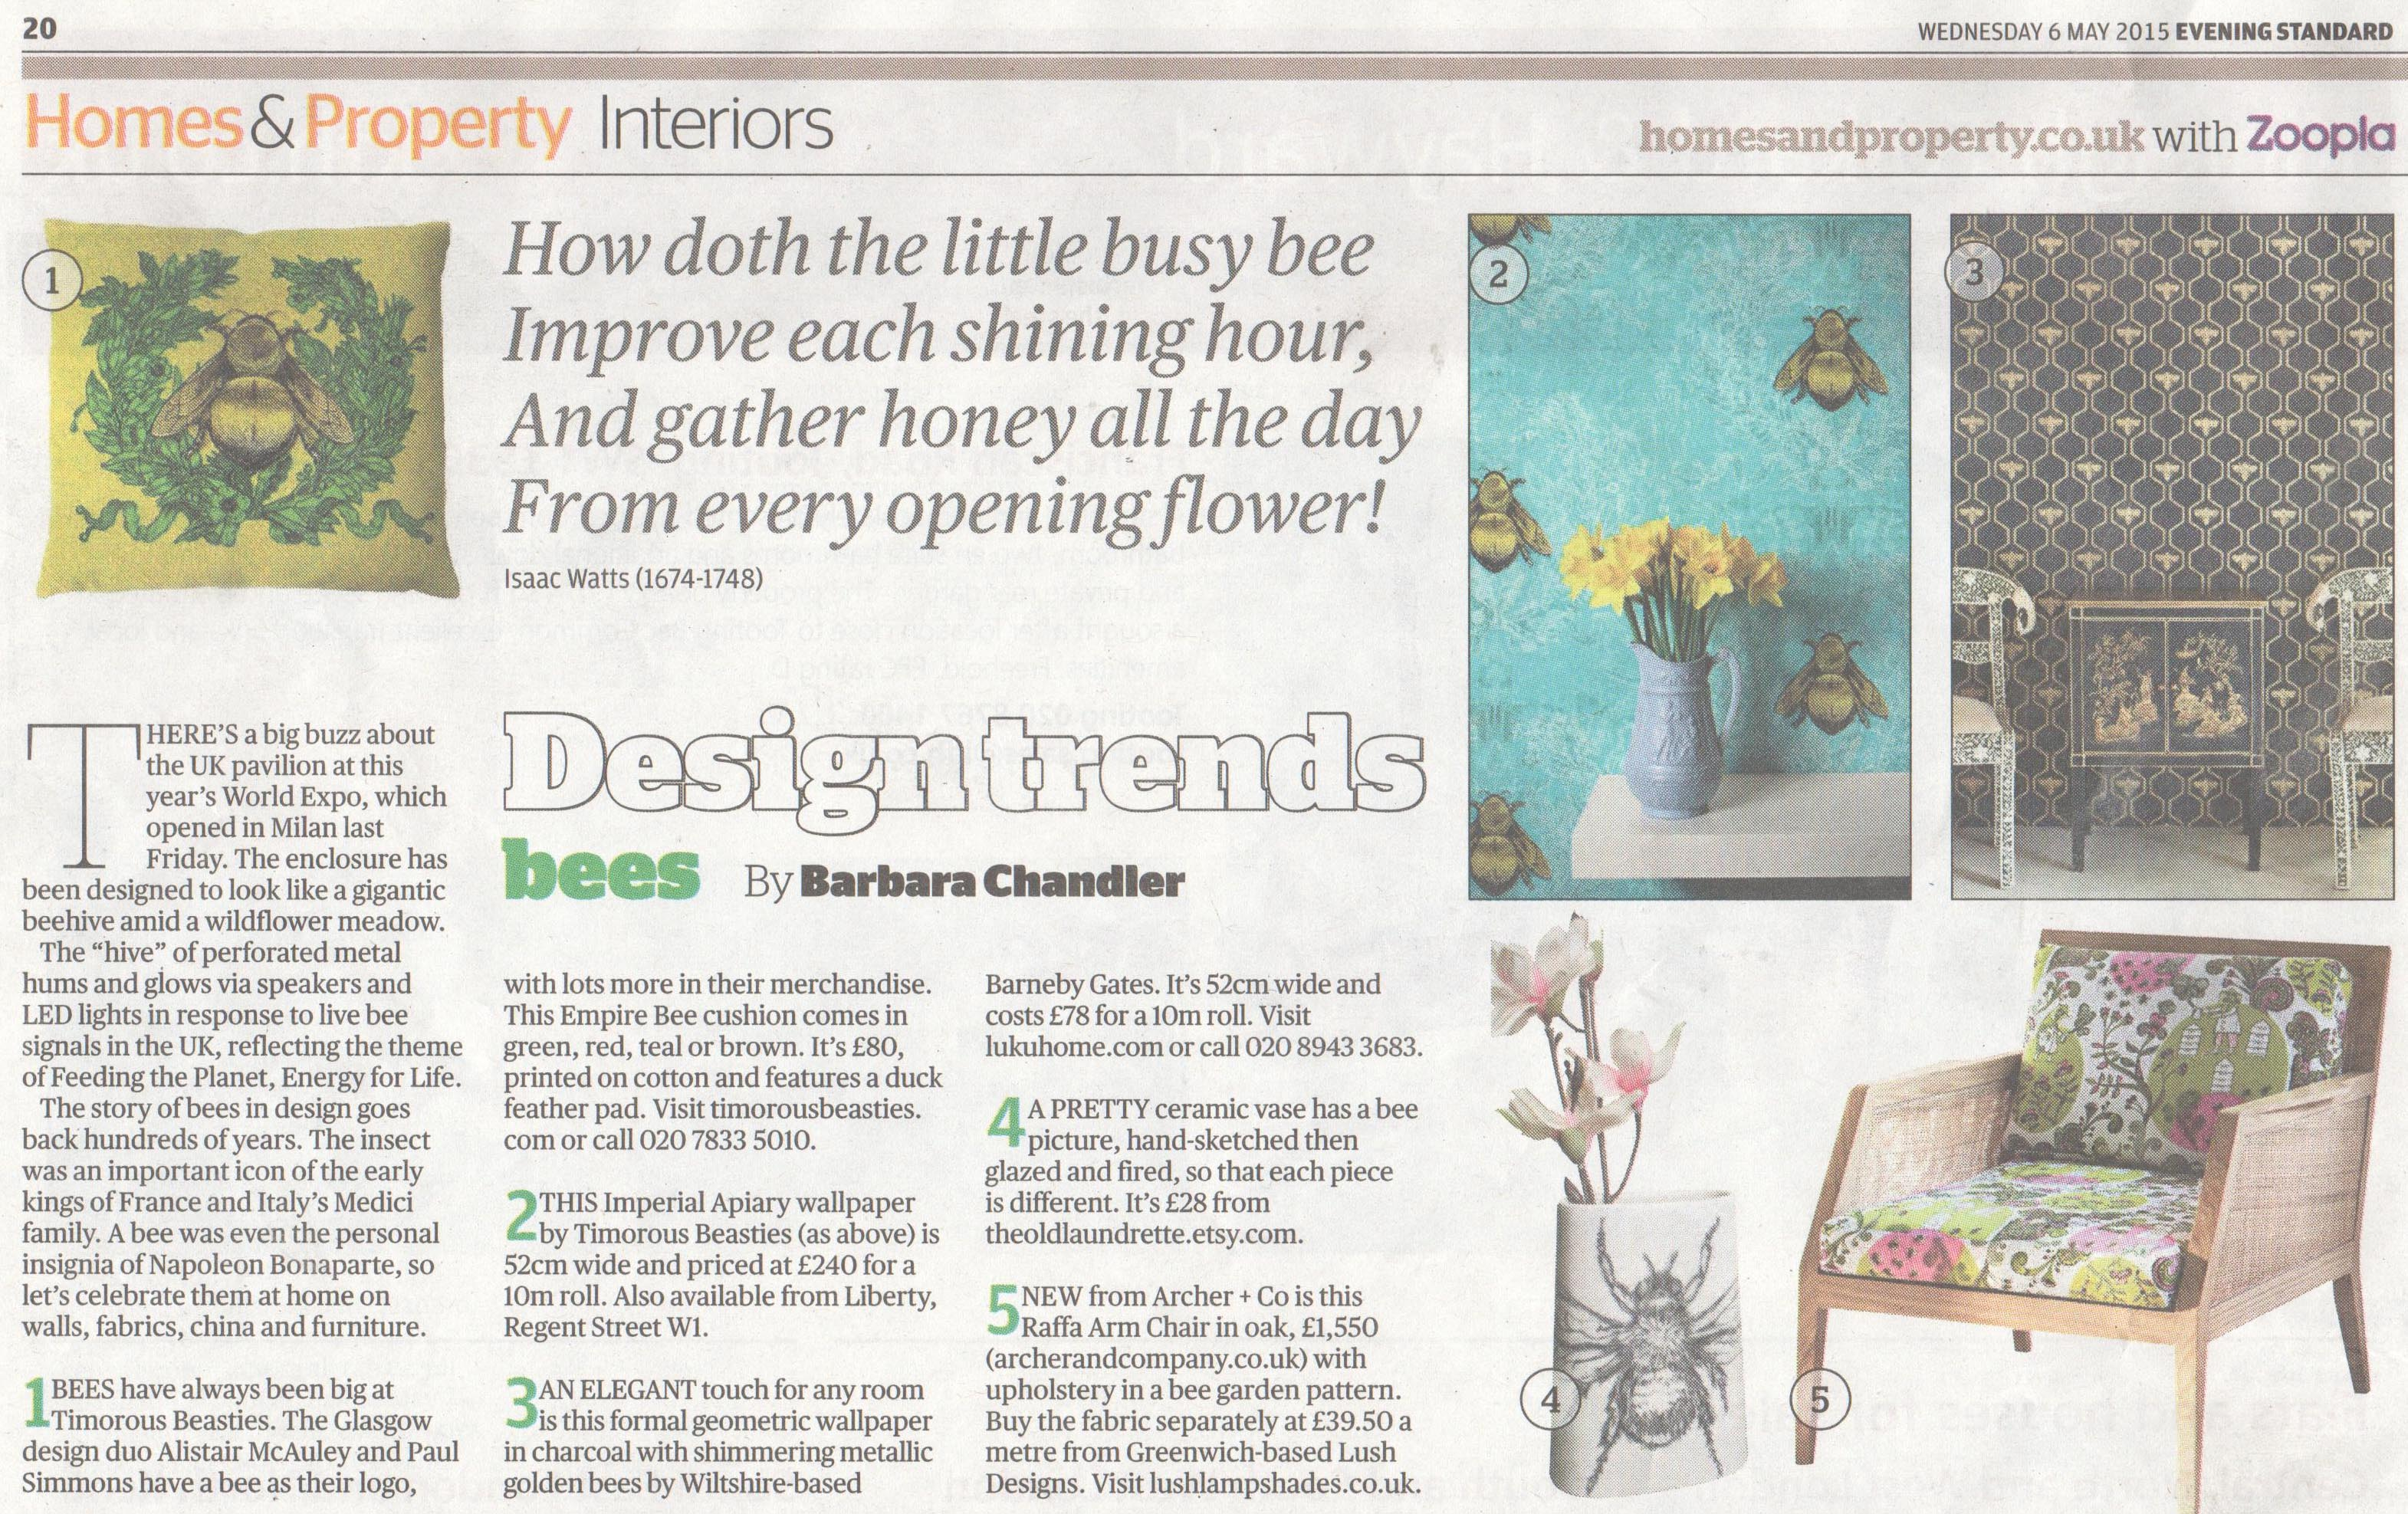 London Evening Standard - Article - May 2015